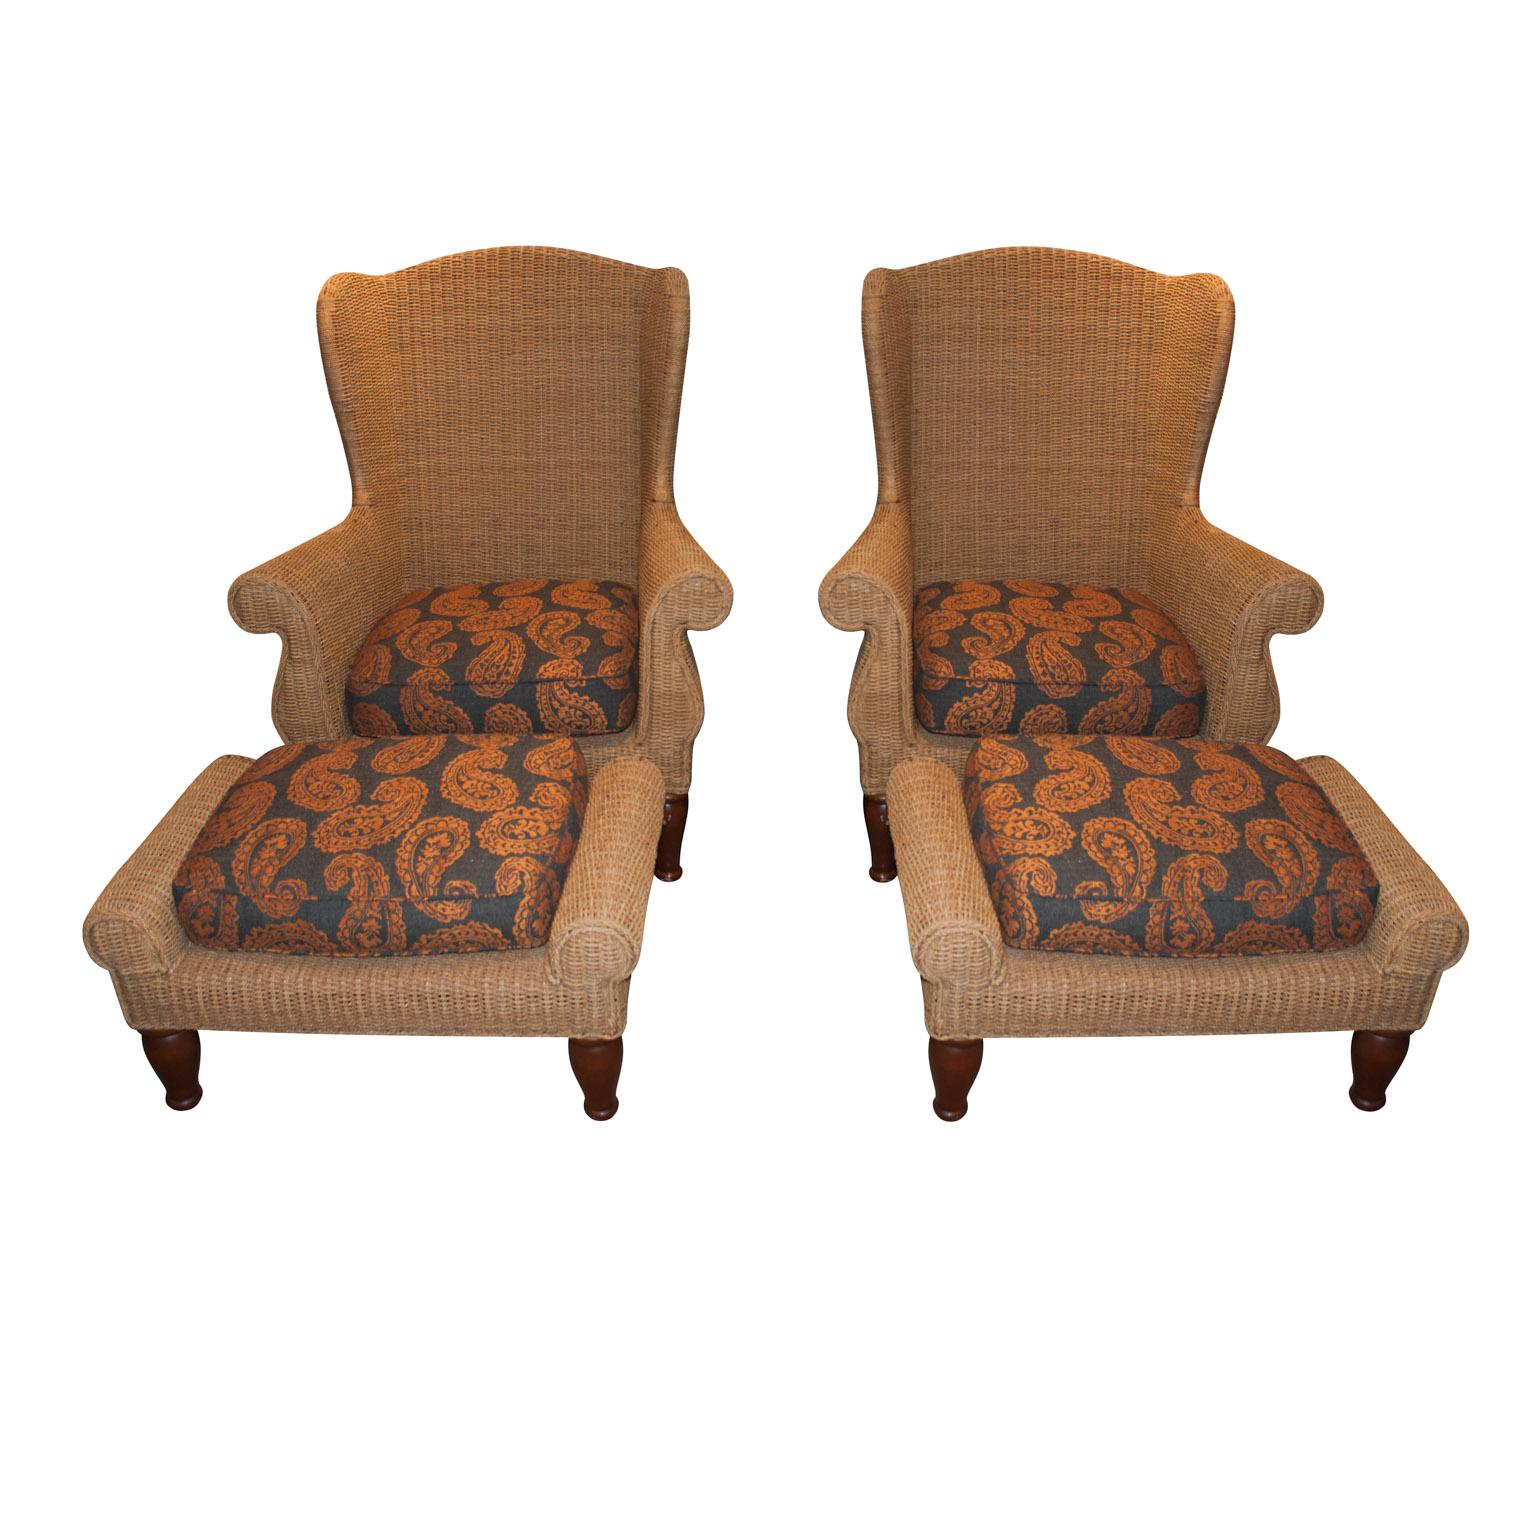 crate and barrel rocking chair reclining a half slipcover wicker arm chairs pair chairish